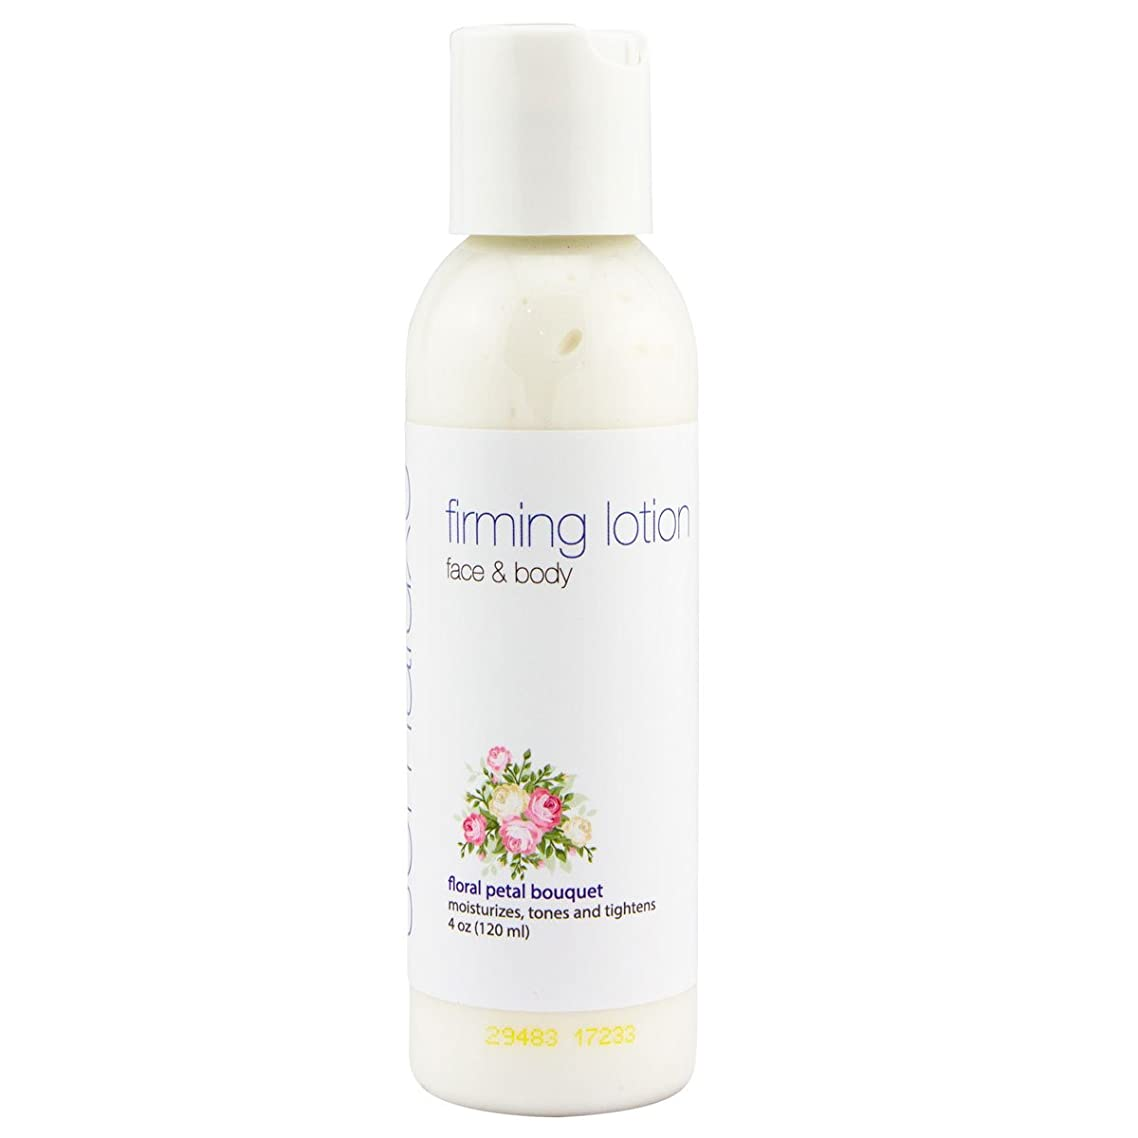 Somaluxe Organic Firming Lotion w/Collagen, CoQ10 and Vitamin C   For Face & Body   Made in the USA